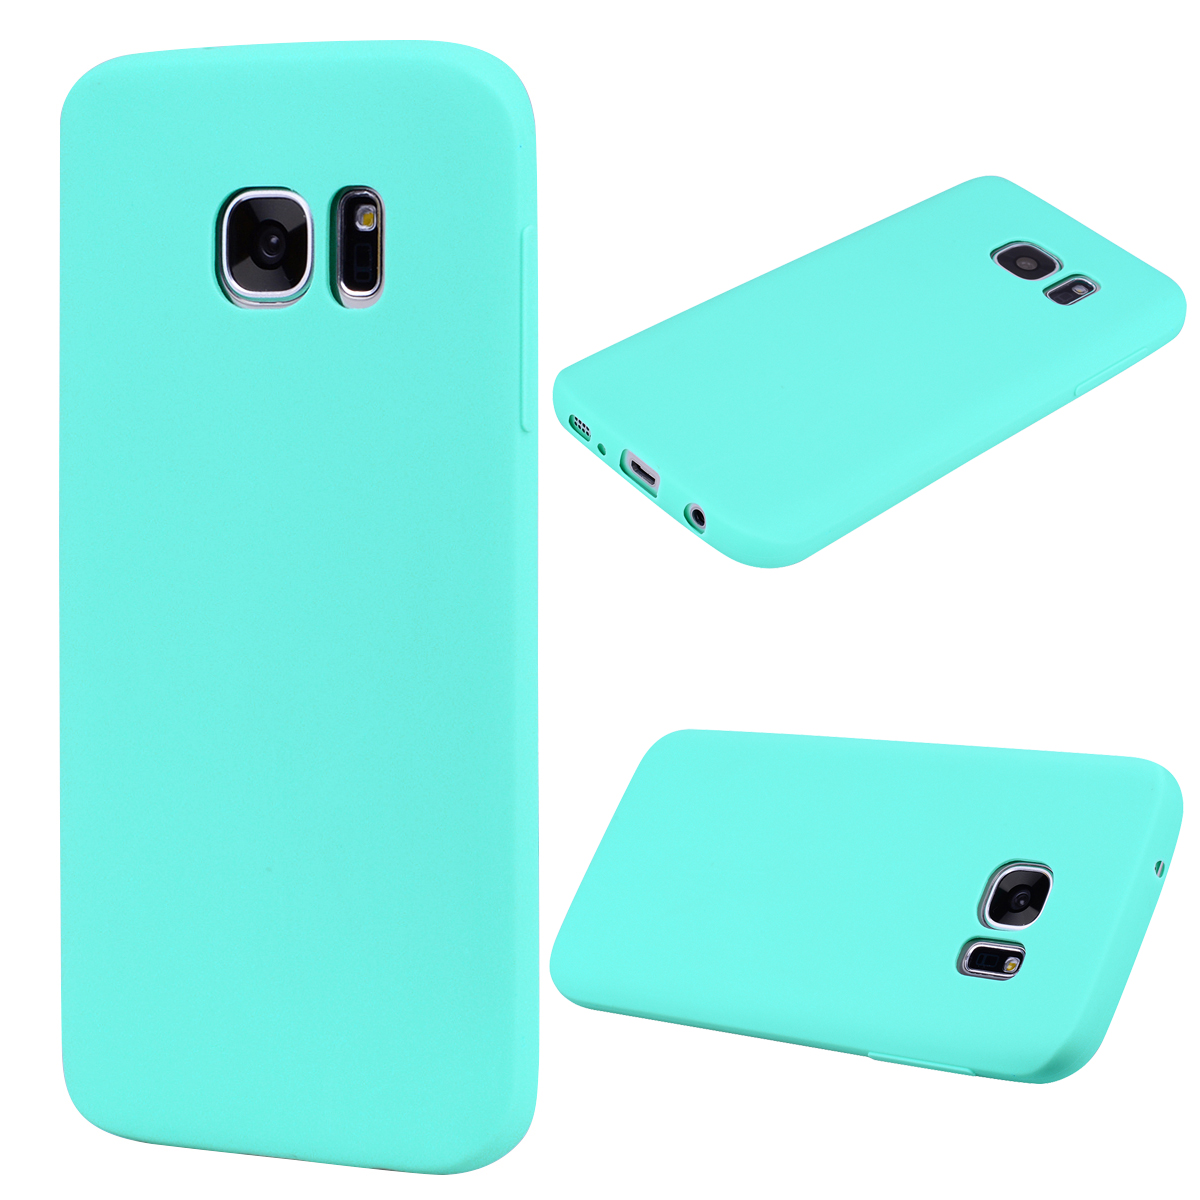 for Samsung S7 edge Cute Candy Color Matte TPU Anti-scratch Non-slip Protective Cover Back Case Light blue